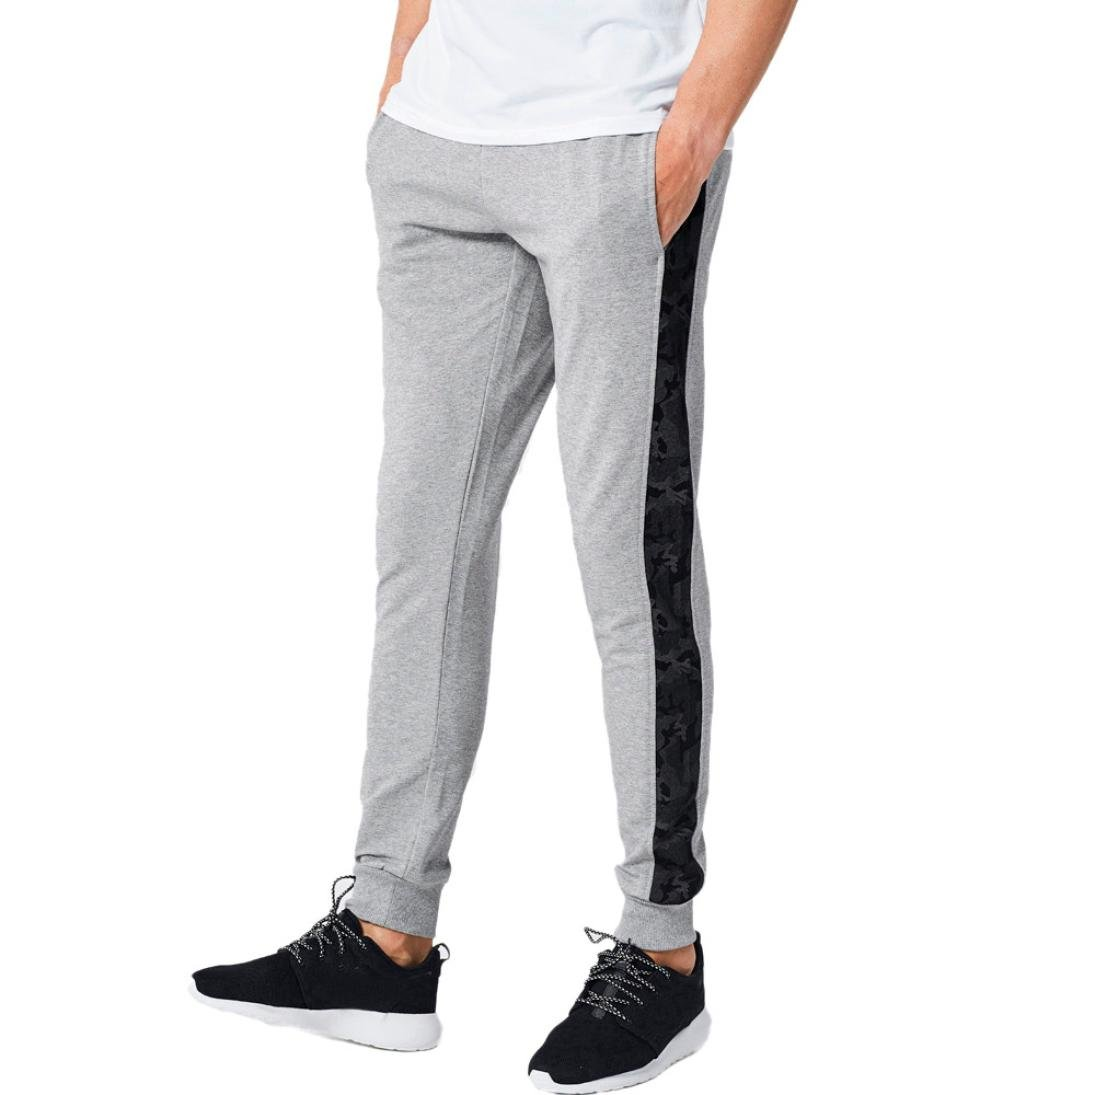 Allywit Men Sport Pants, Mens Casual Jogger Dance Sportwear Baggy Harem Pants Slacks Trousers Sweatpants